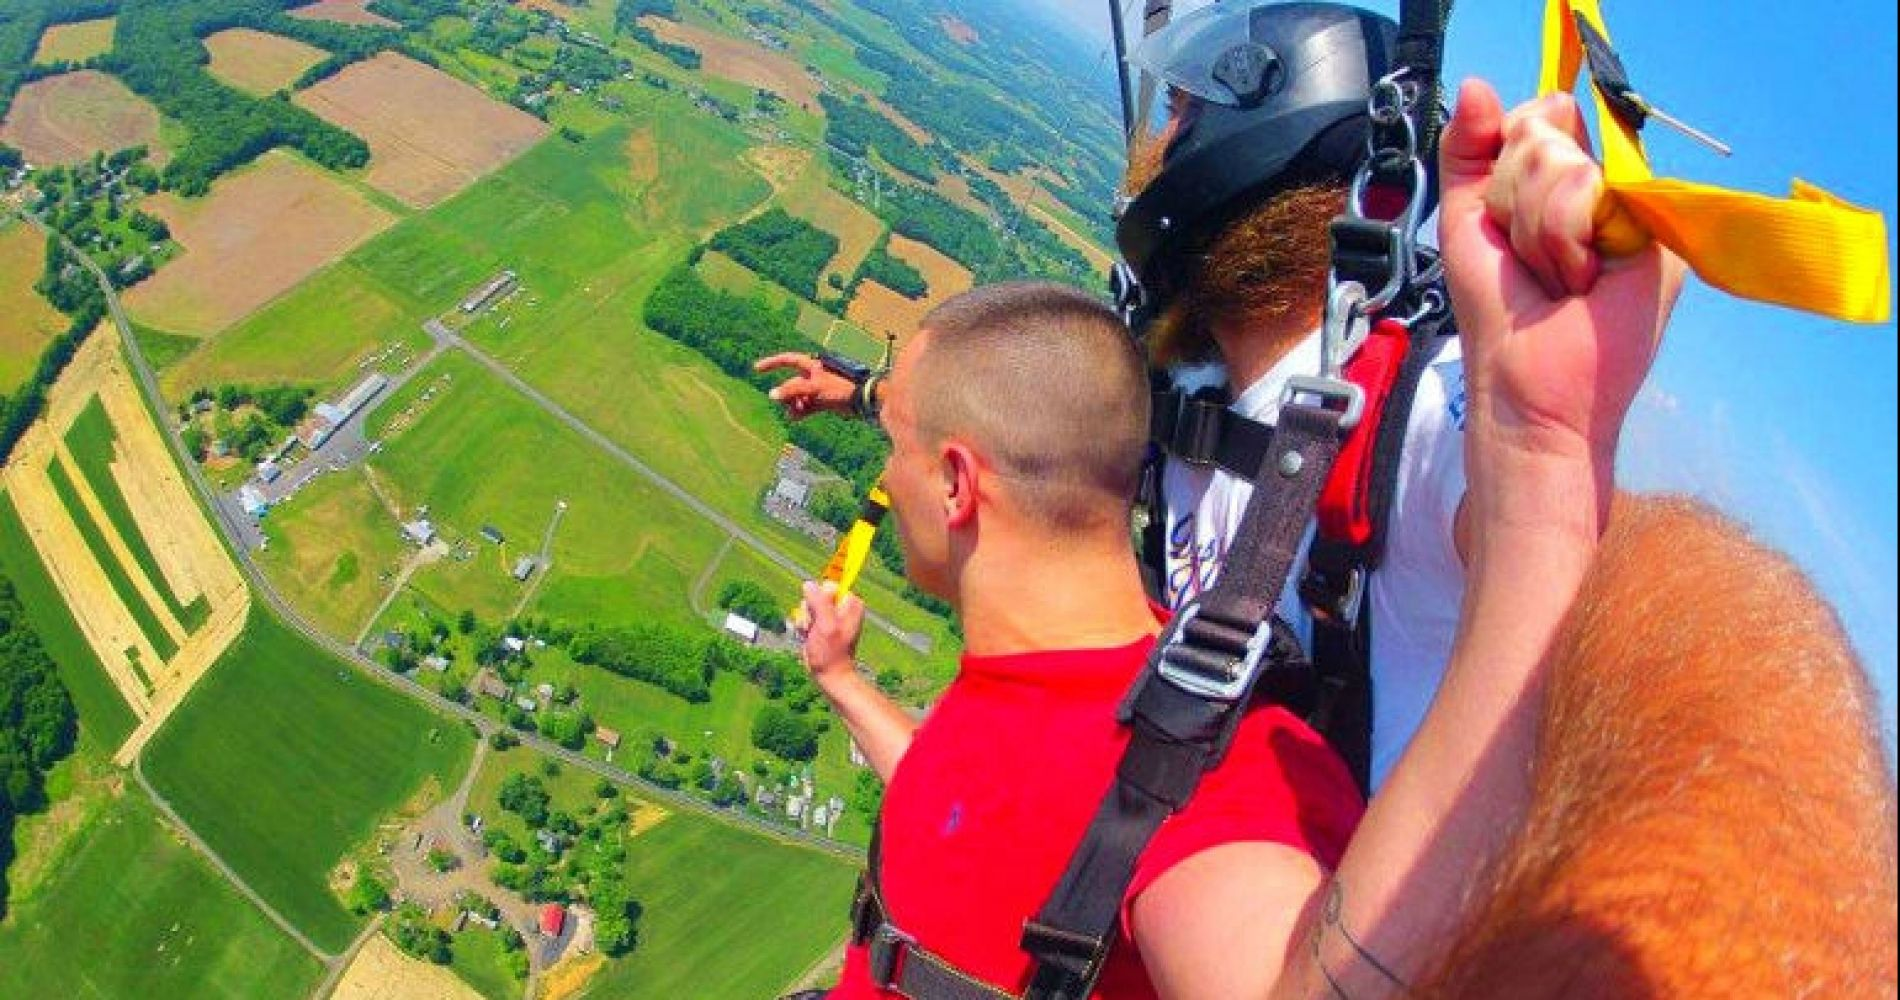 11,000ft Skydive Jump in Baltimore